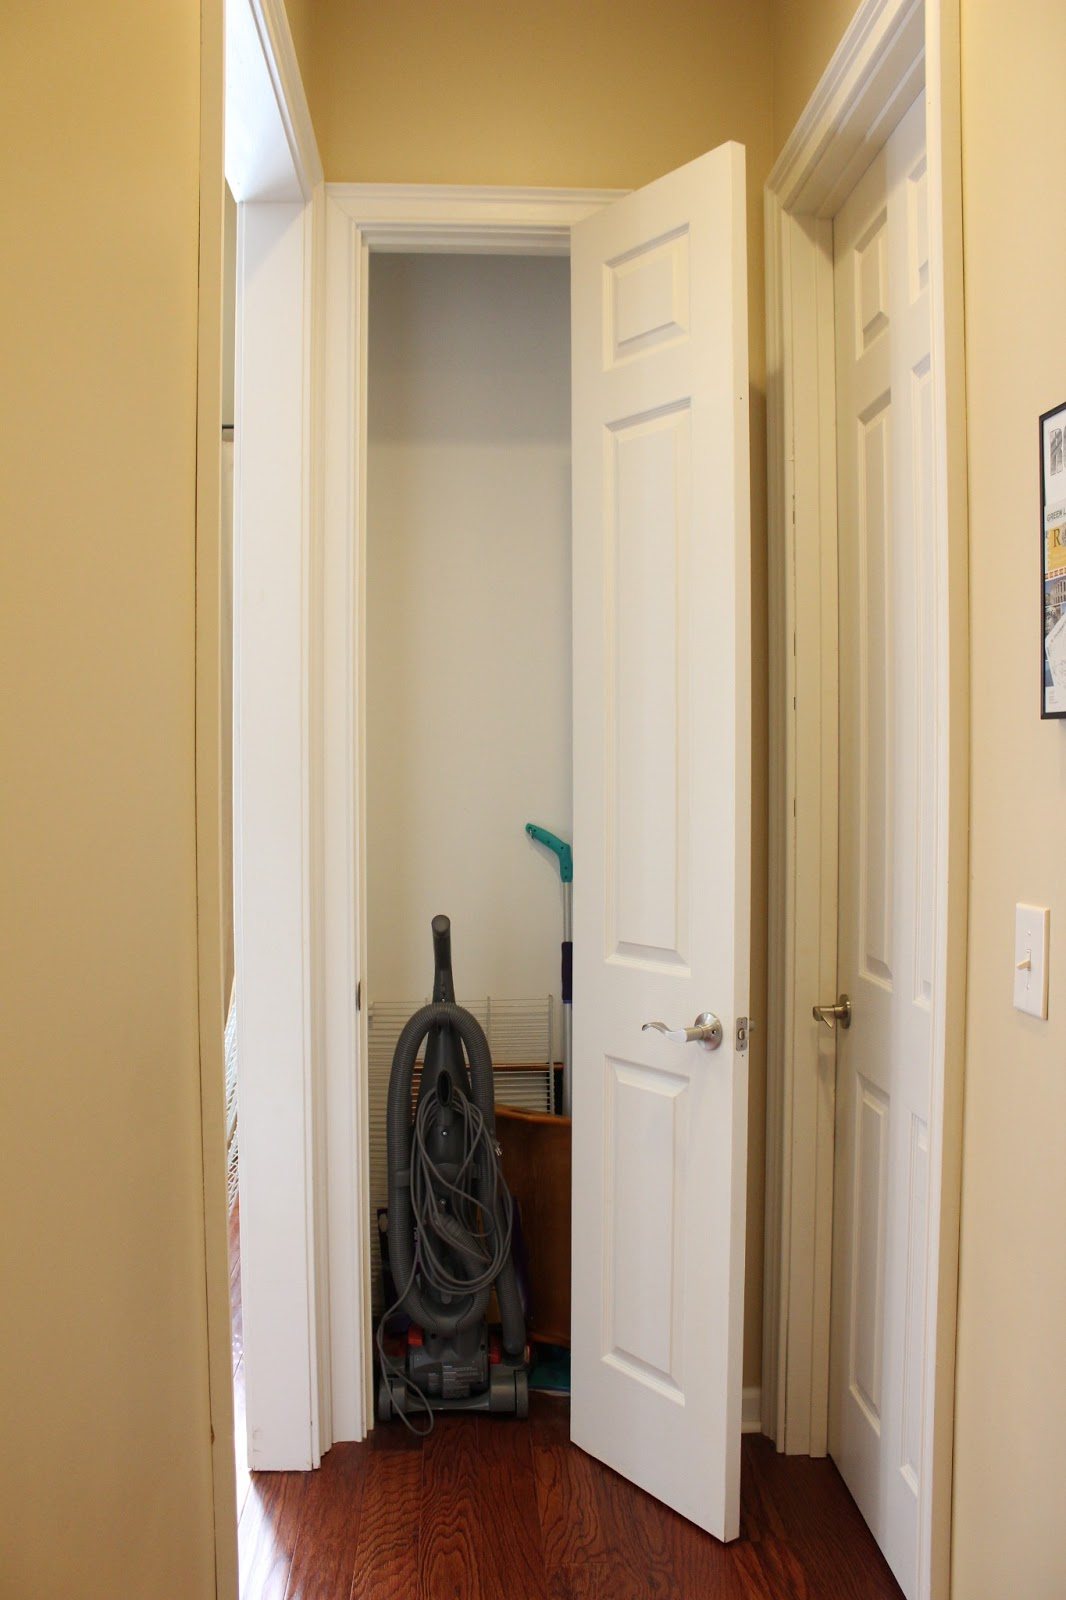 I Decided To Move The Vacuum And Swiffer To The Much Roomier Coat Closet  (which Also Meant I Had To Organize That Closet, More On That Later), ...